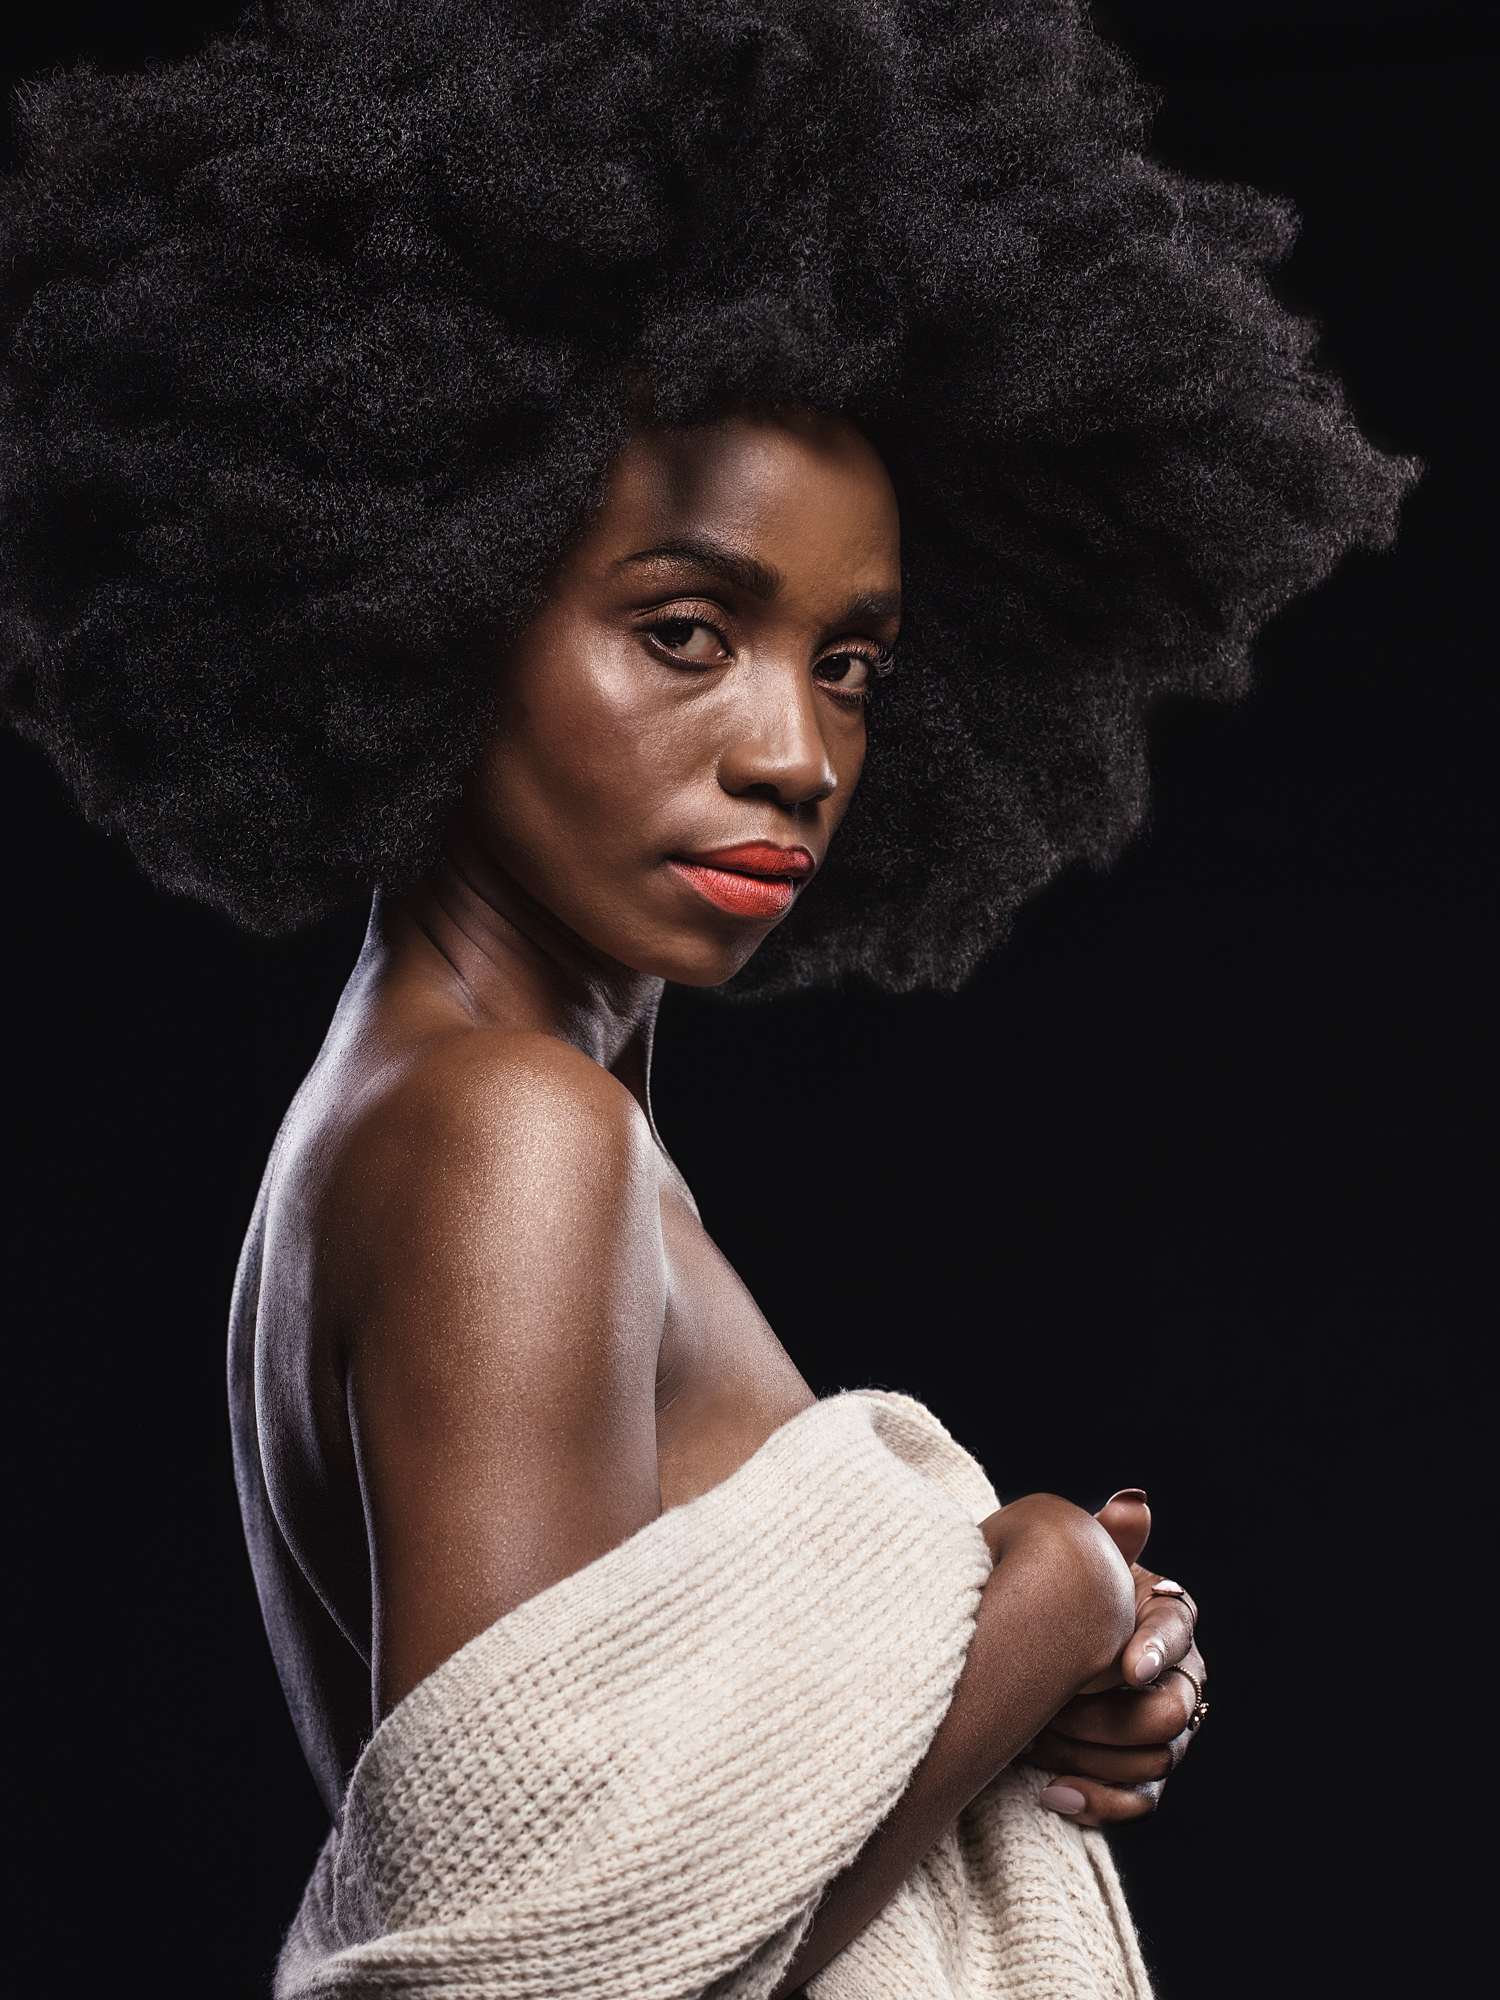 Portrait image of Loot Love for Destiny Magazine's Black Girl Magic feature by Michelle Wastie